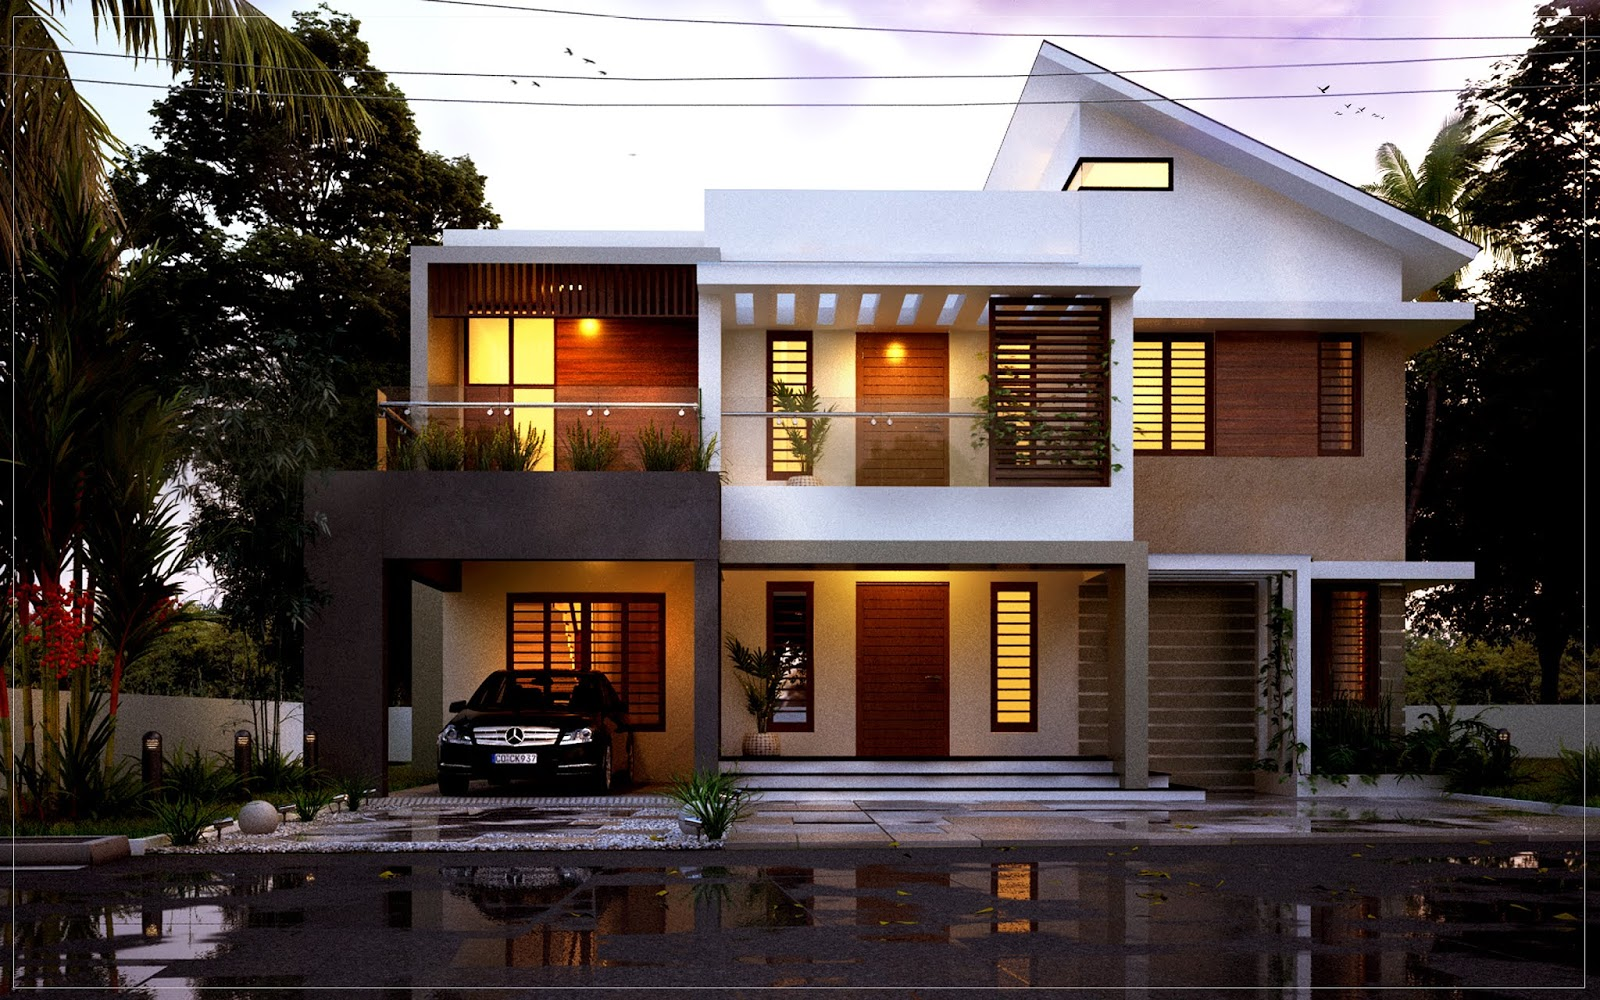 Contemporary style front view 1800 SQ FT 3 BED ROOM RESIDENCE